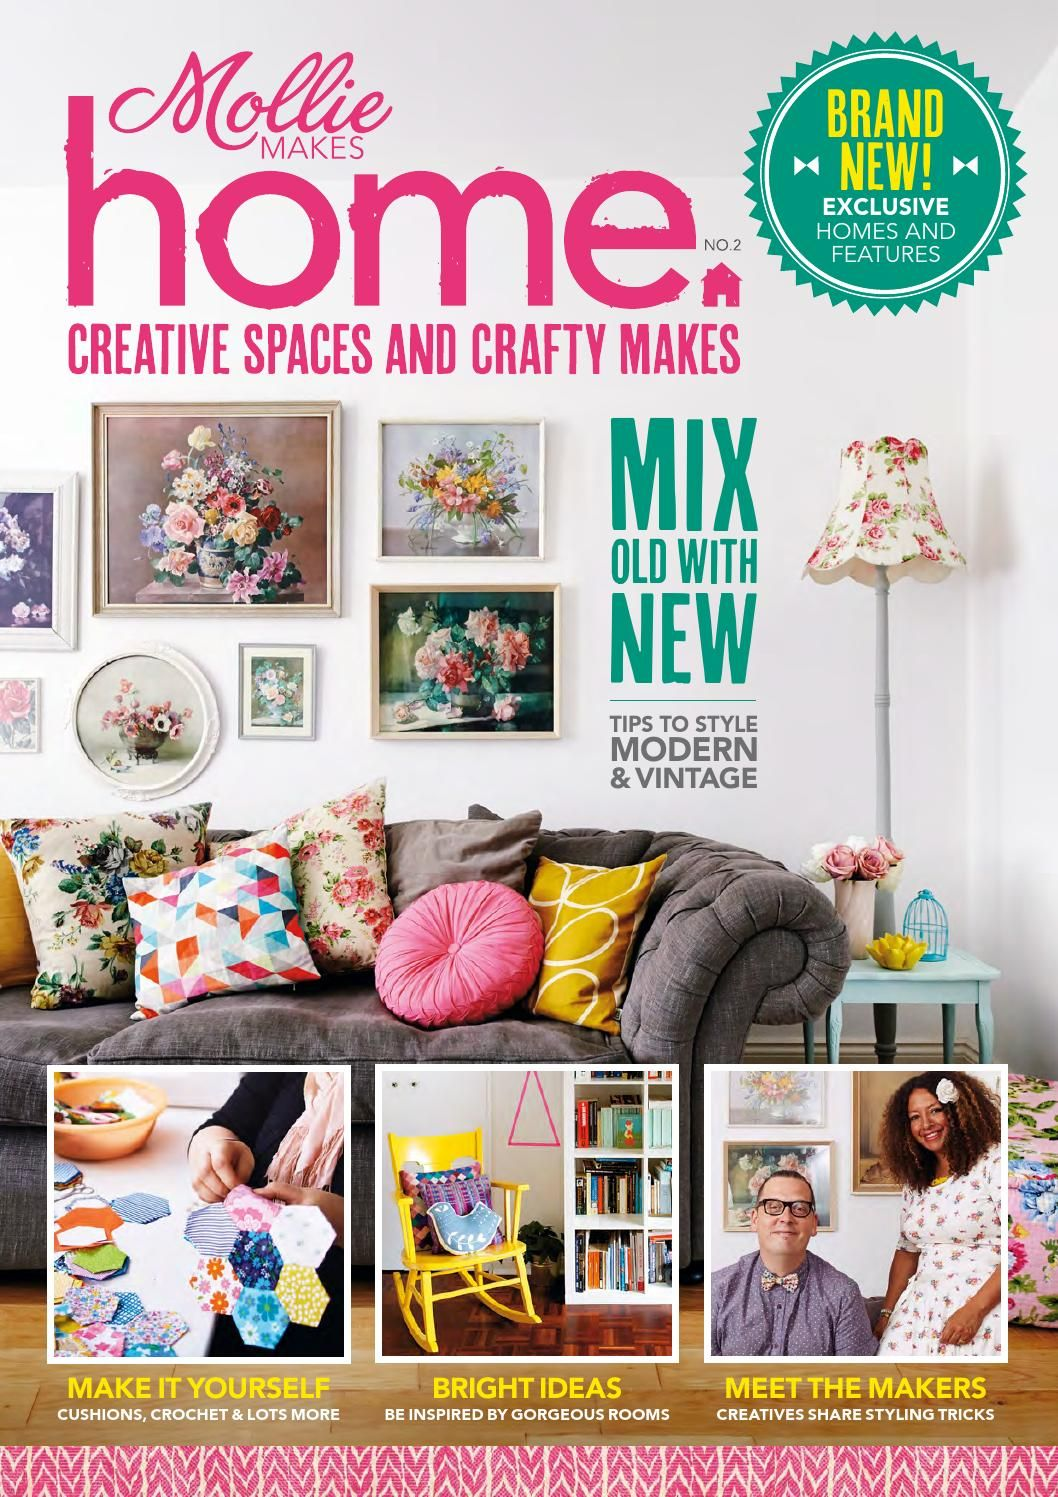 Mollie Makes Home 2  • Homes of designer makers, boutique owner and bloggers • Beautiful spaces made cosy • Our favourite projects • We chat to inspirational crafty folk